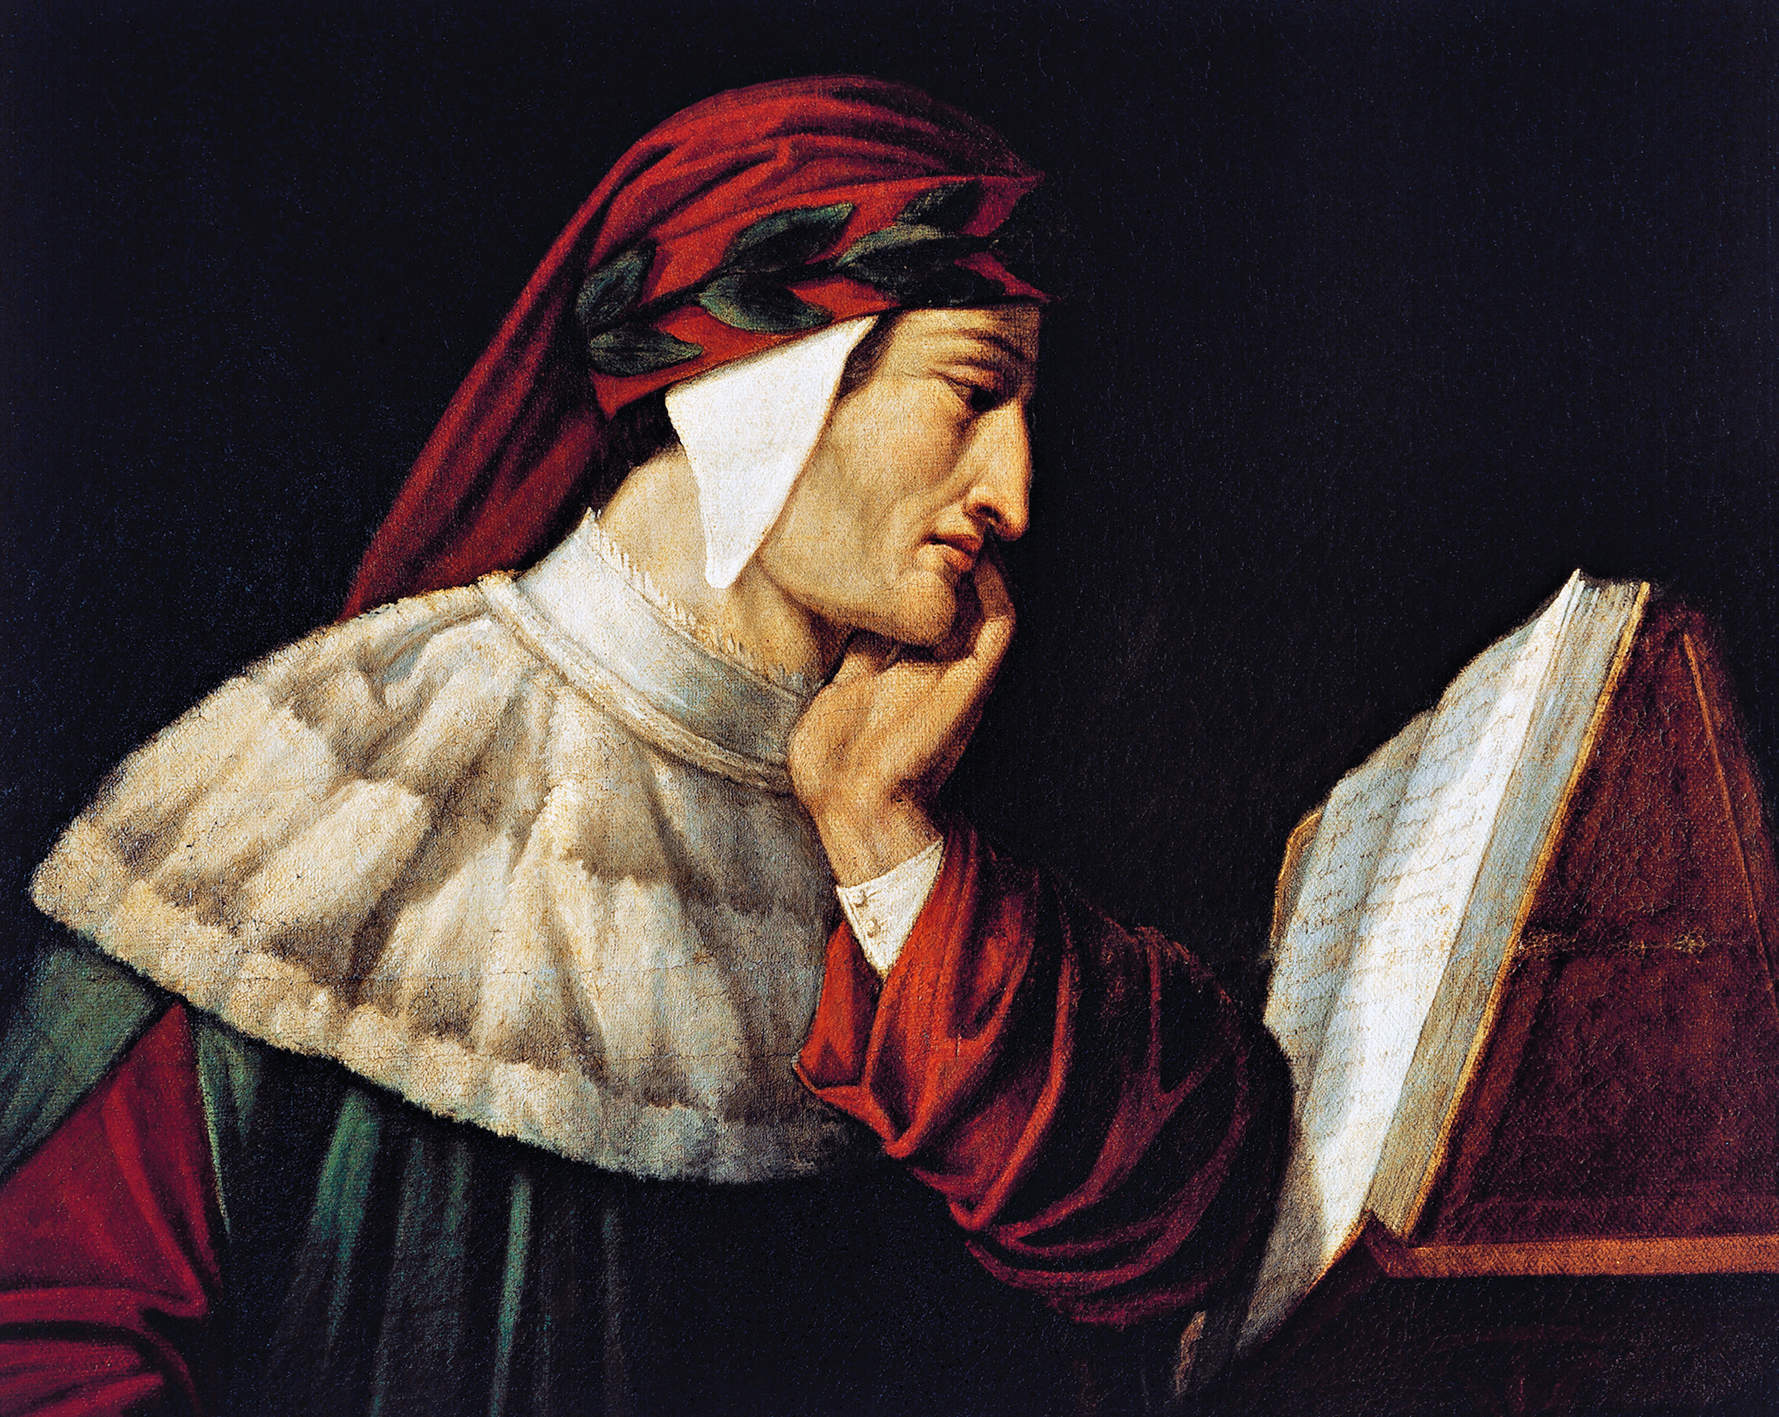 If you're uncertain how long it takes to age your wine, ask a descendant of Dante